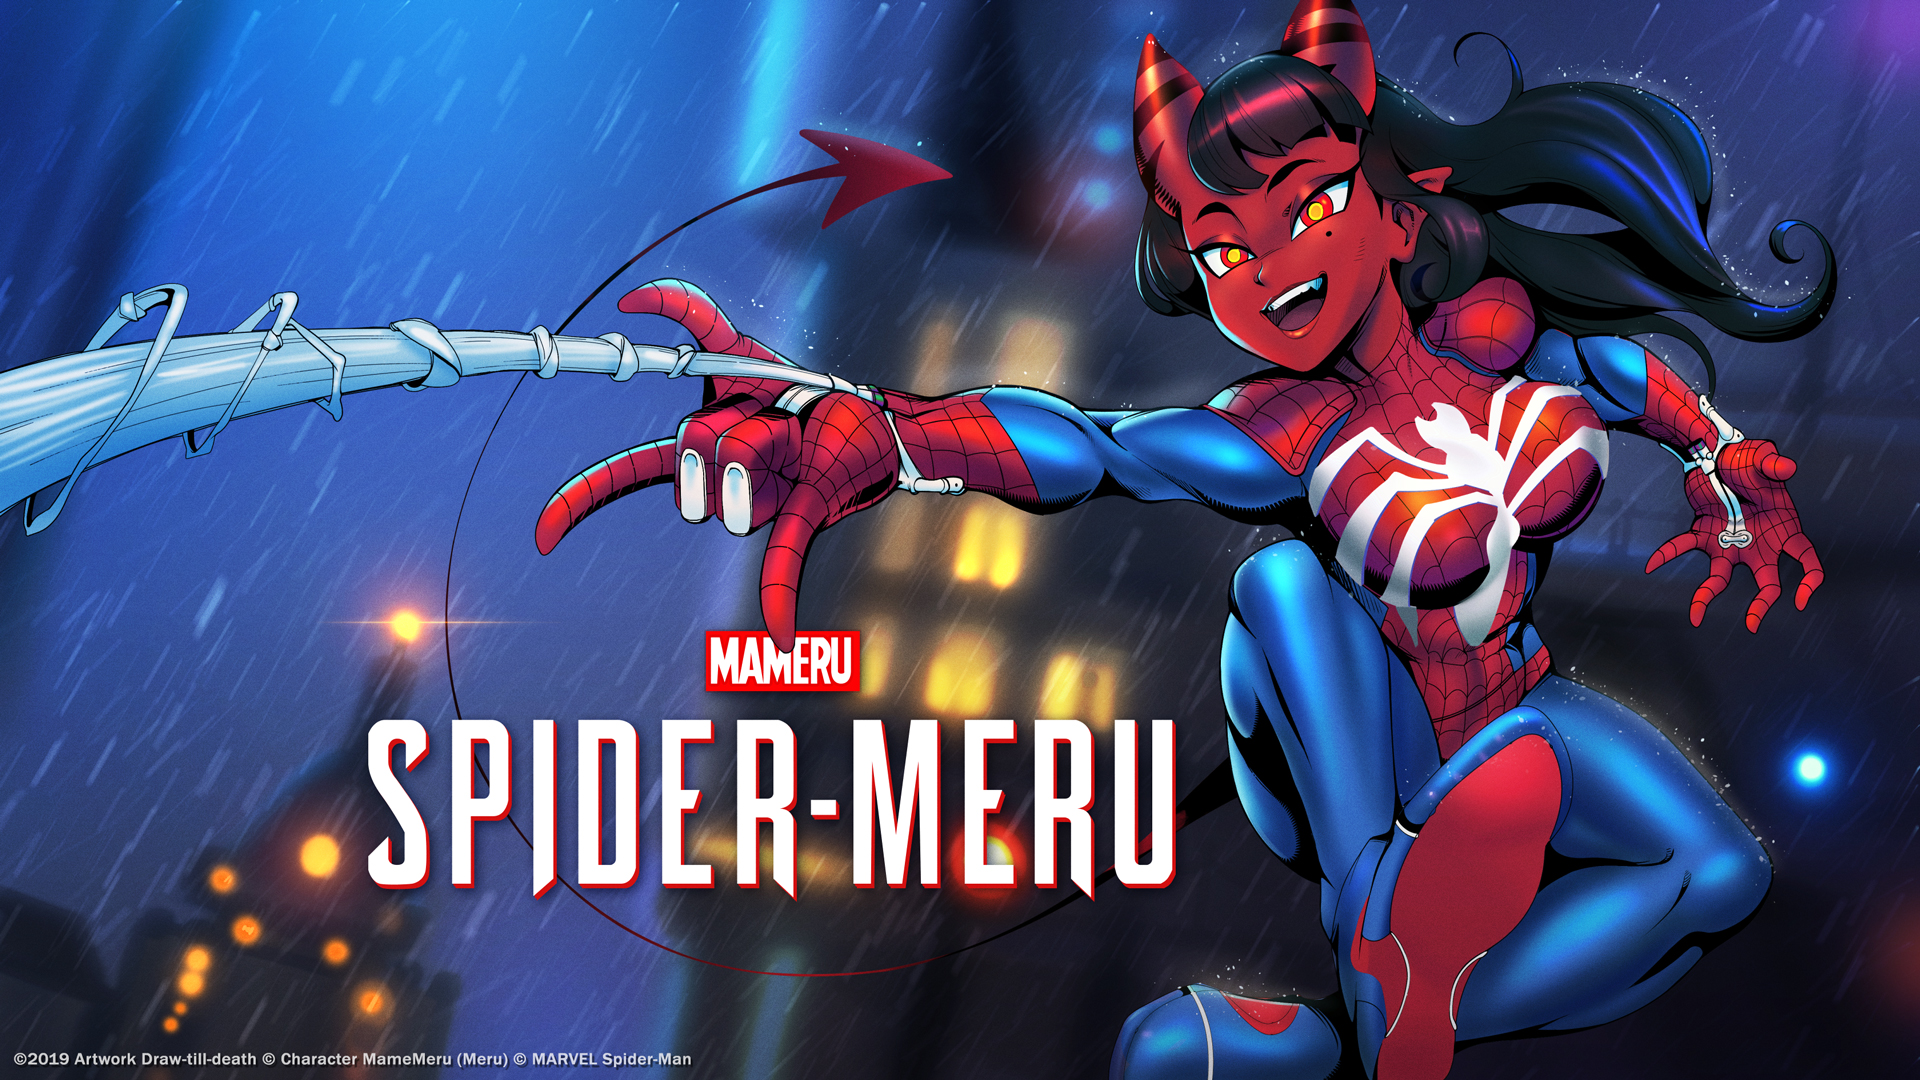 The Amazing Spider-Meru